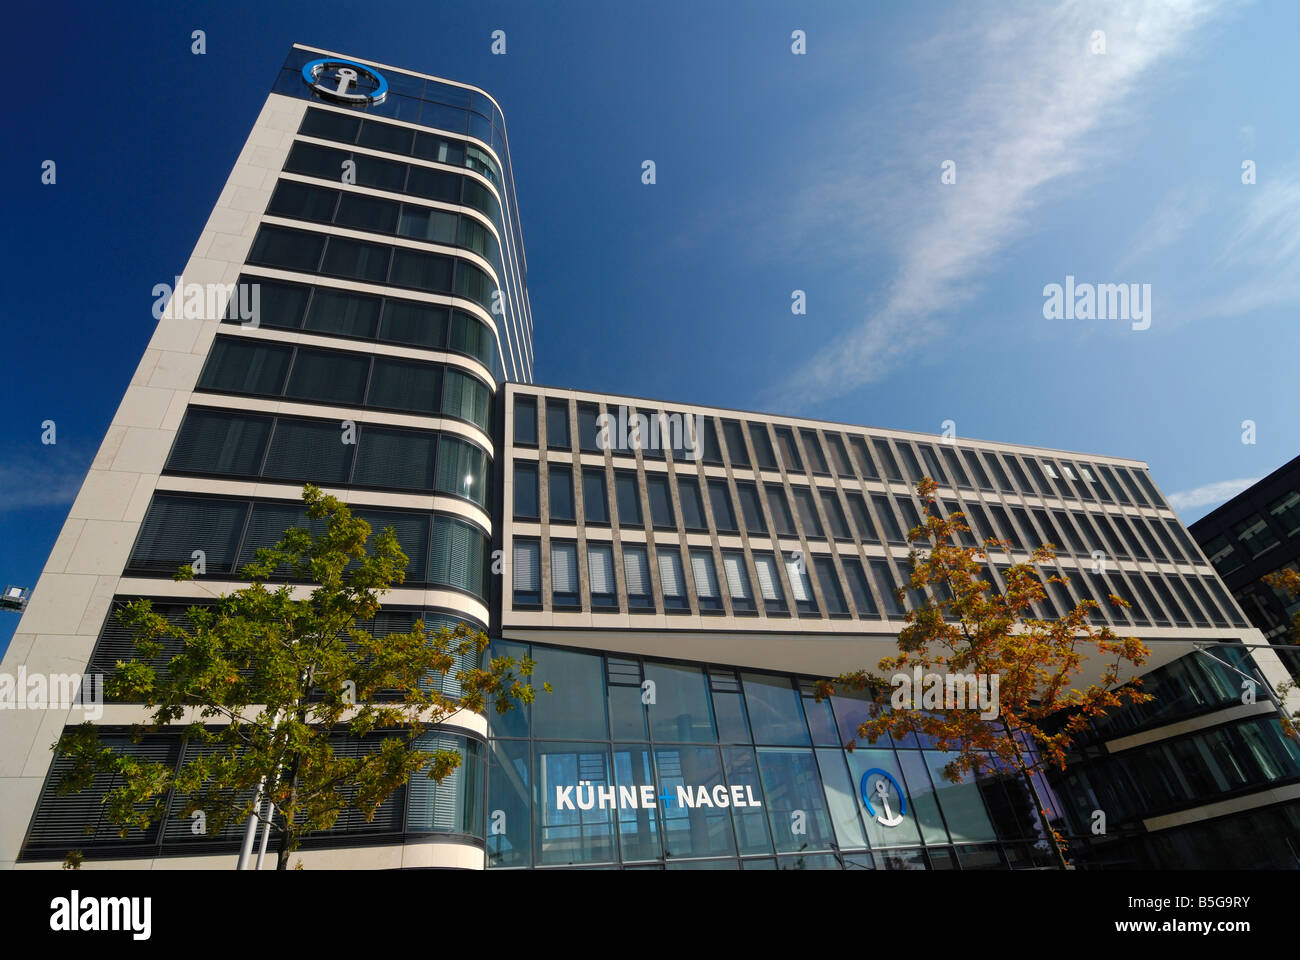 German headquarter of the global logistics network Kuehne + Nagel in the 'Hafencity' in Hamburg, North-Germany. - Stock Image